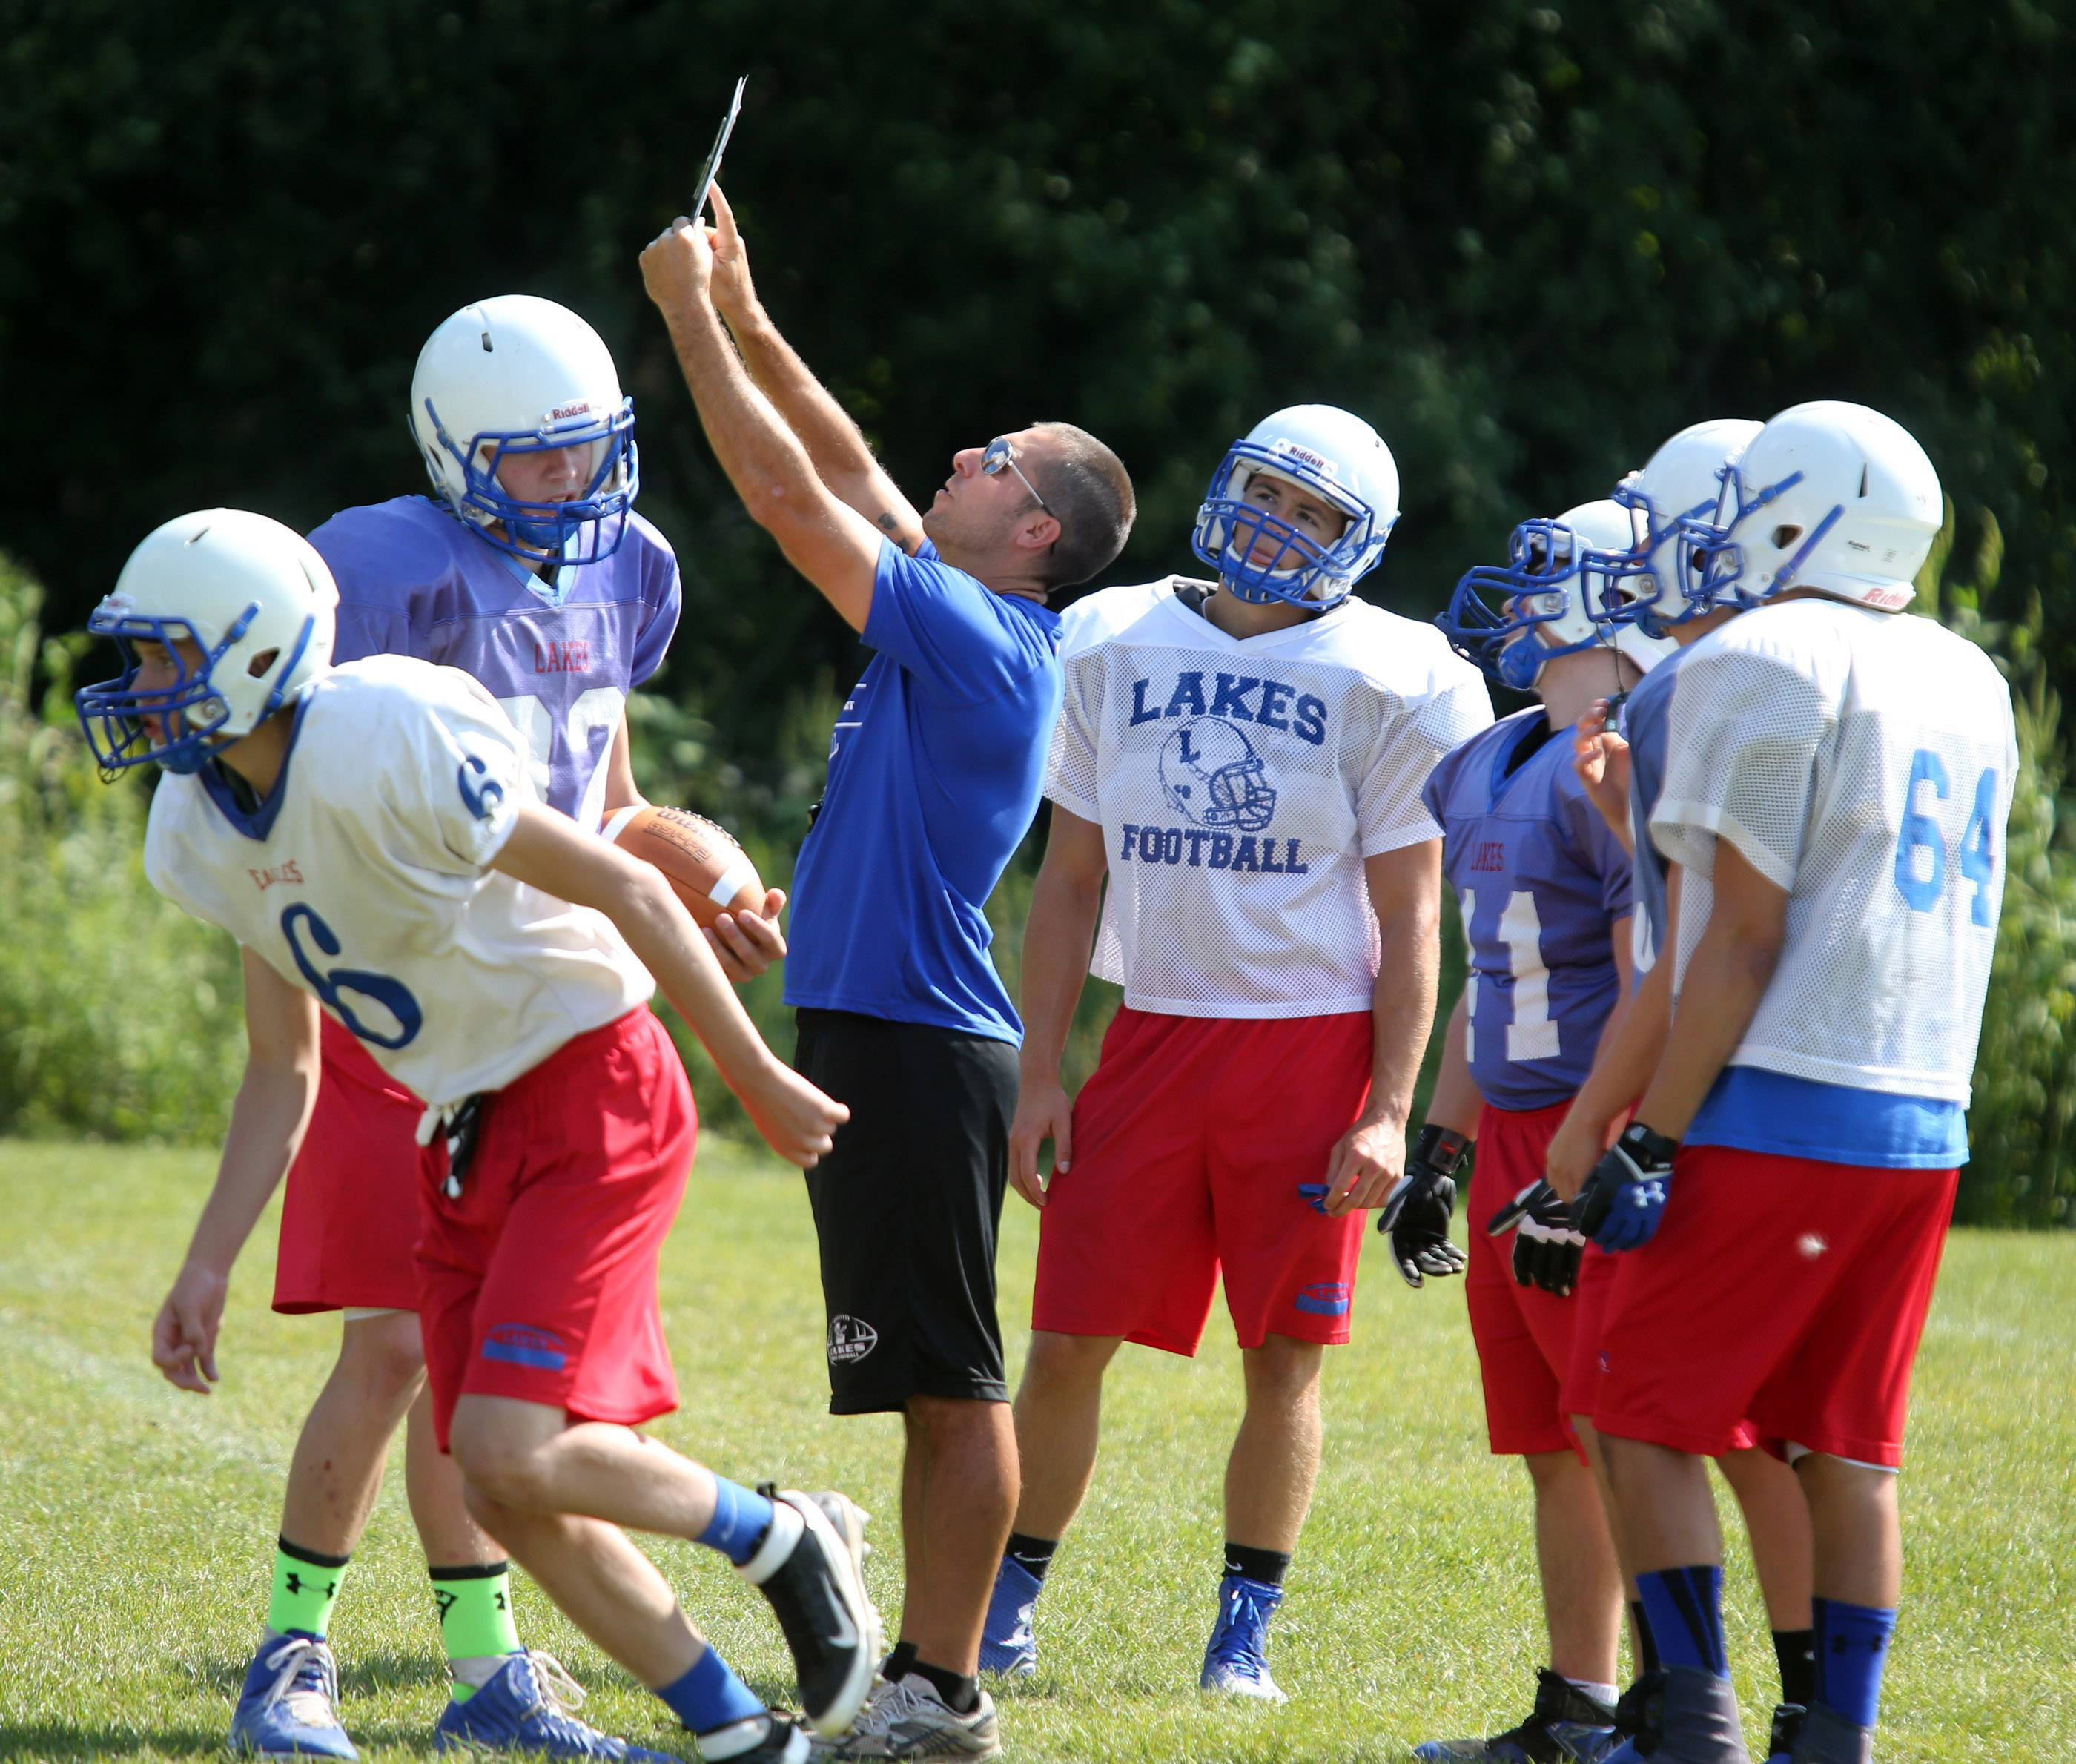 Lakes head varsity football coach Luke Mertens goes over a kicking play during practice on Friday in Lake Villa.